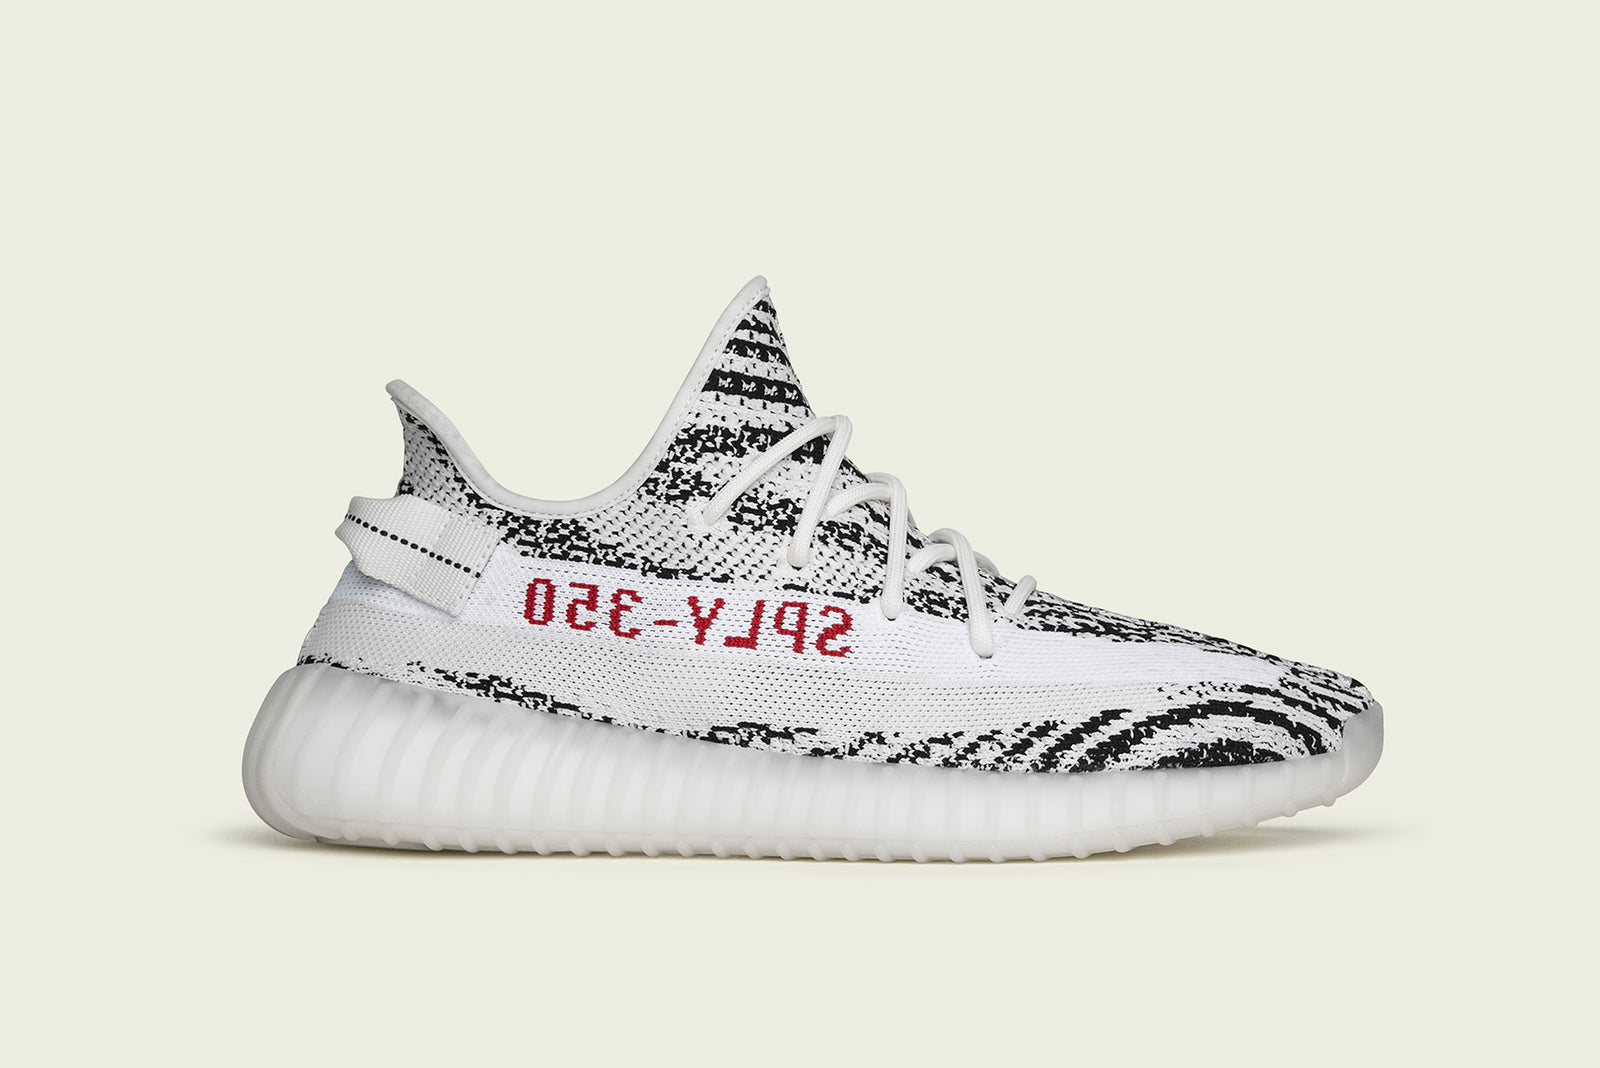 official photos fcab2 e322e adidas + Kanye West YEEZY BOOST 350 V2 'White/Core Black/Red ...